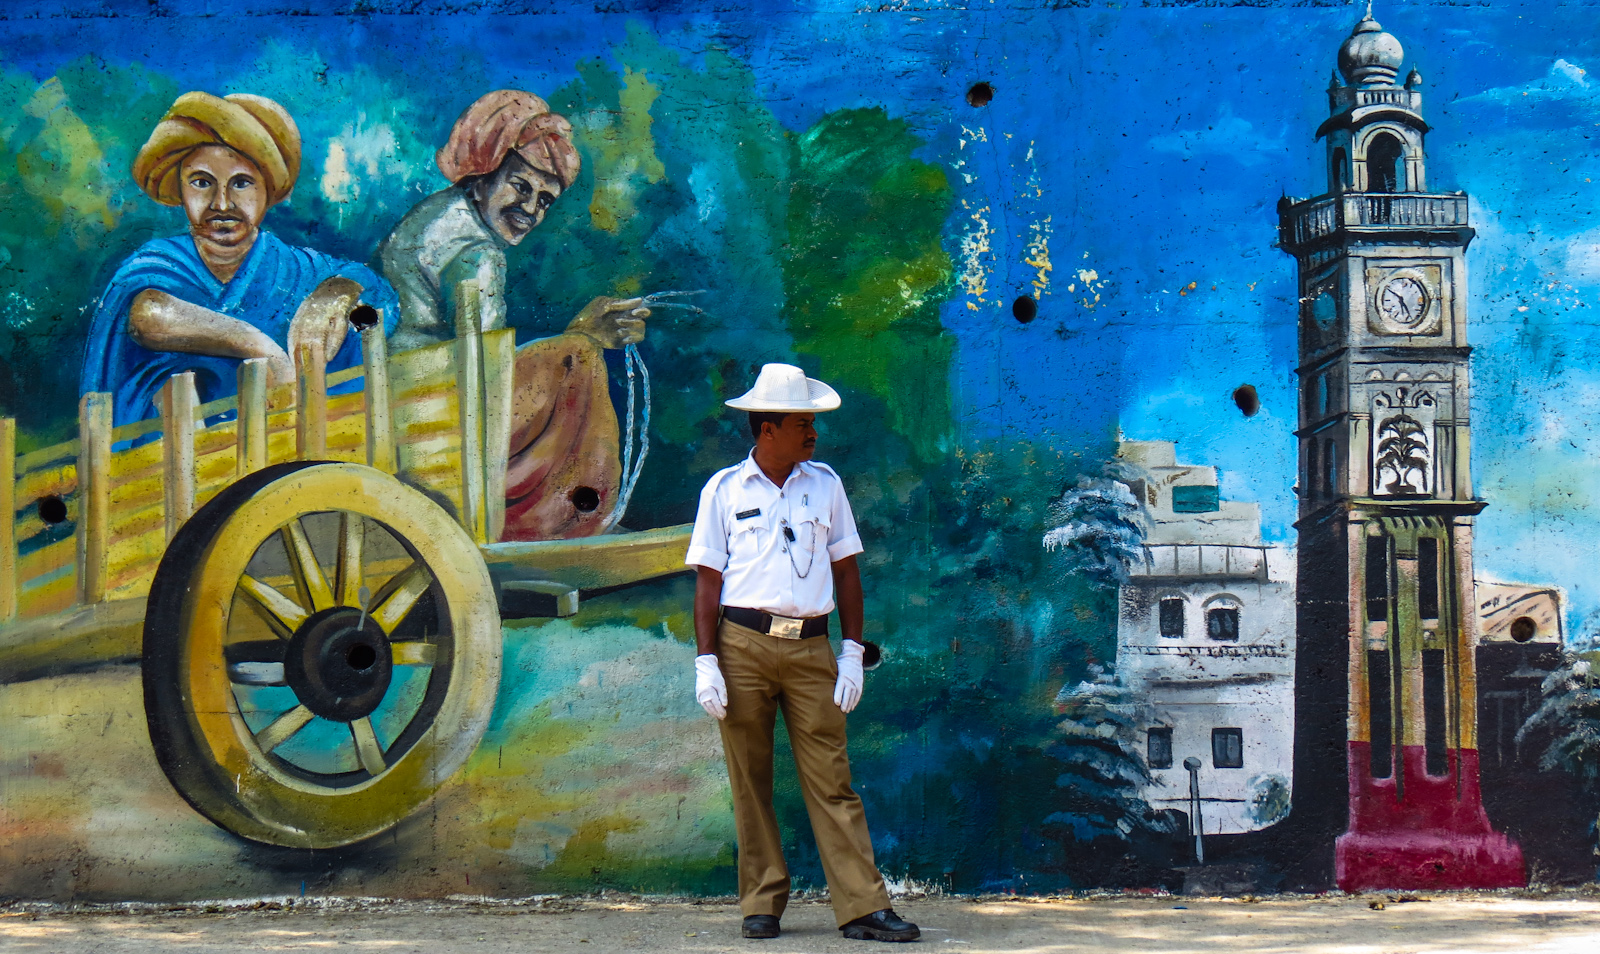 mural-and-poiceman-mysore